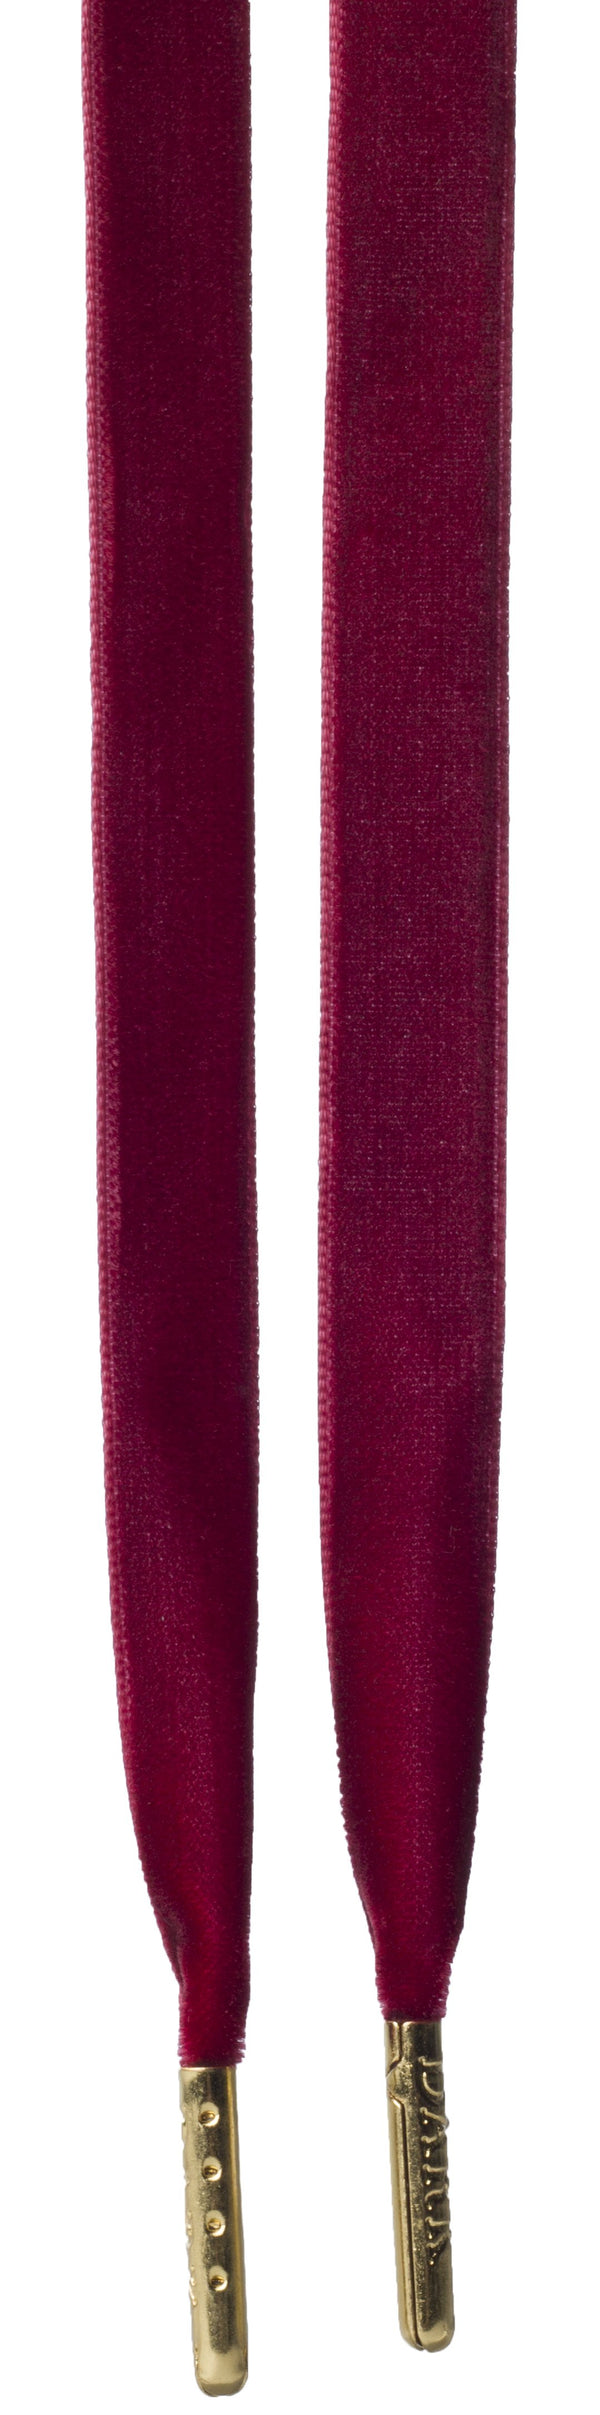 VELVET SHOE LACES WINE